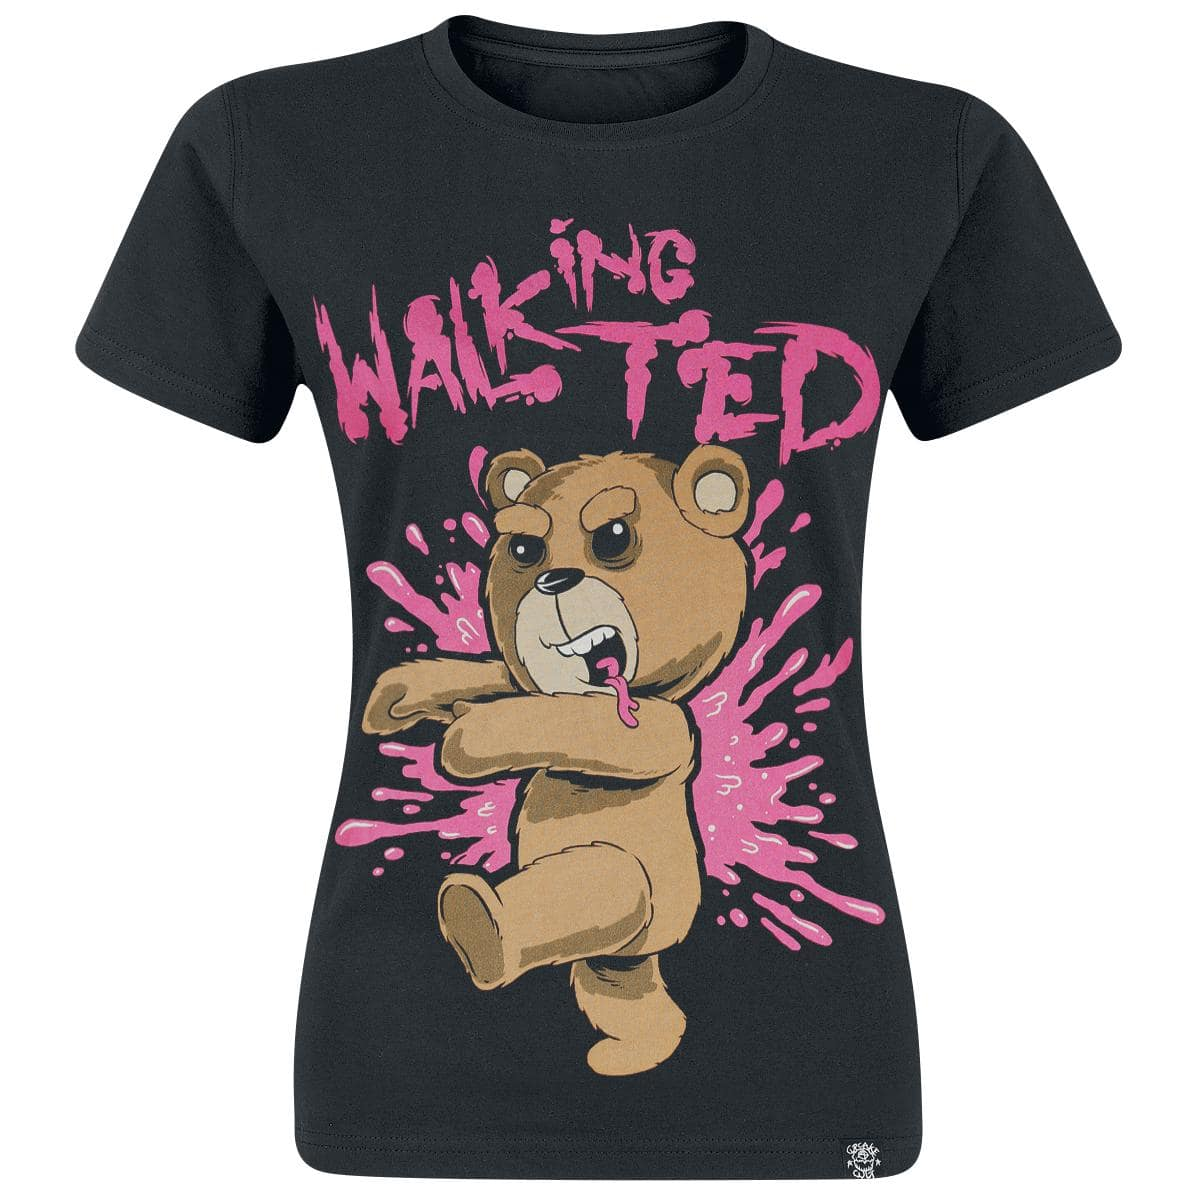 Ich fühle mich diskriminiert: The Walking Ted